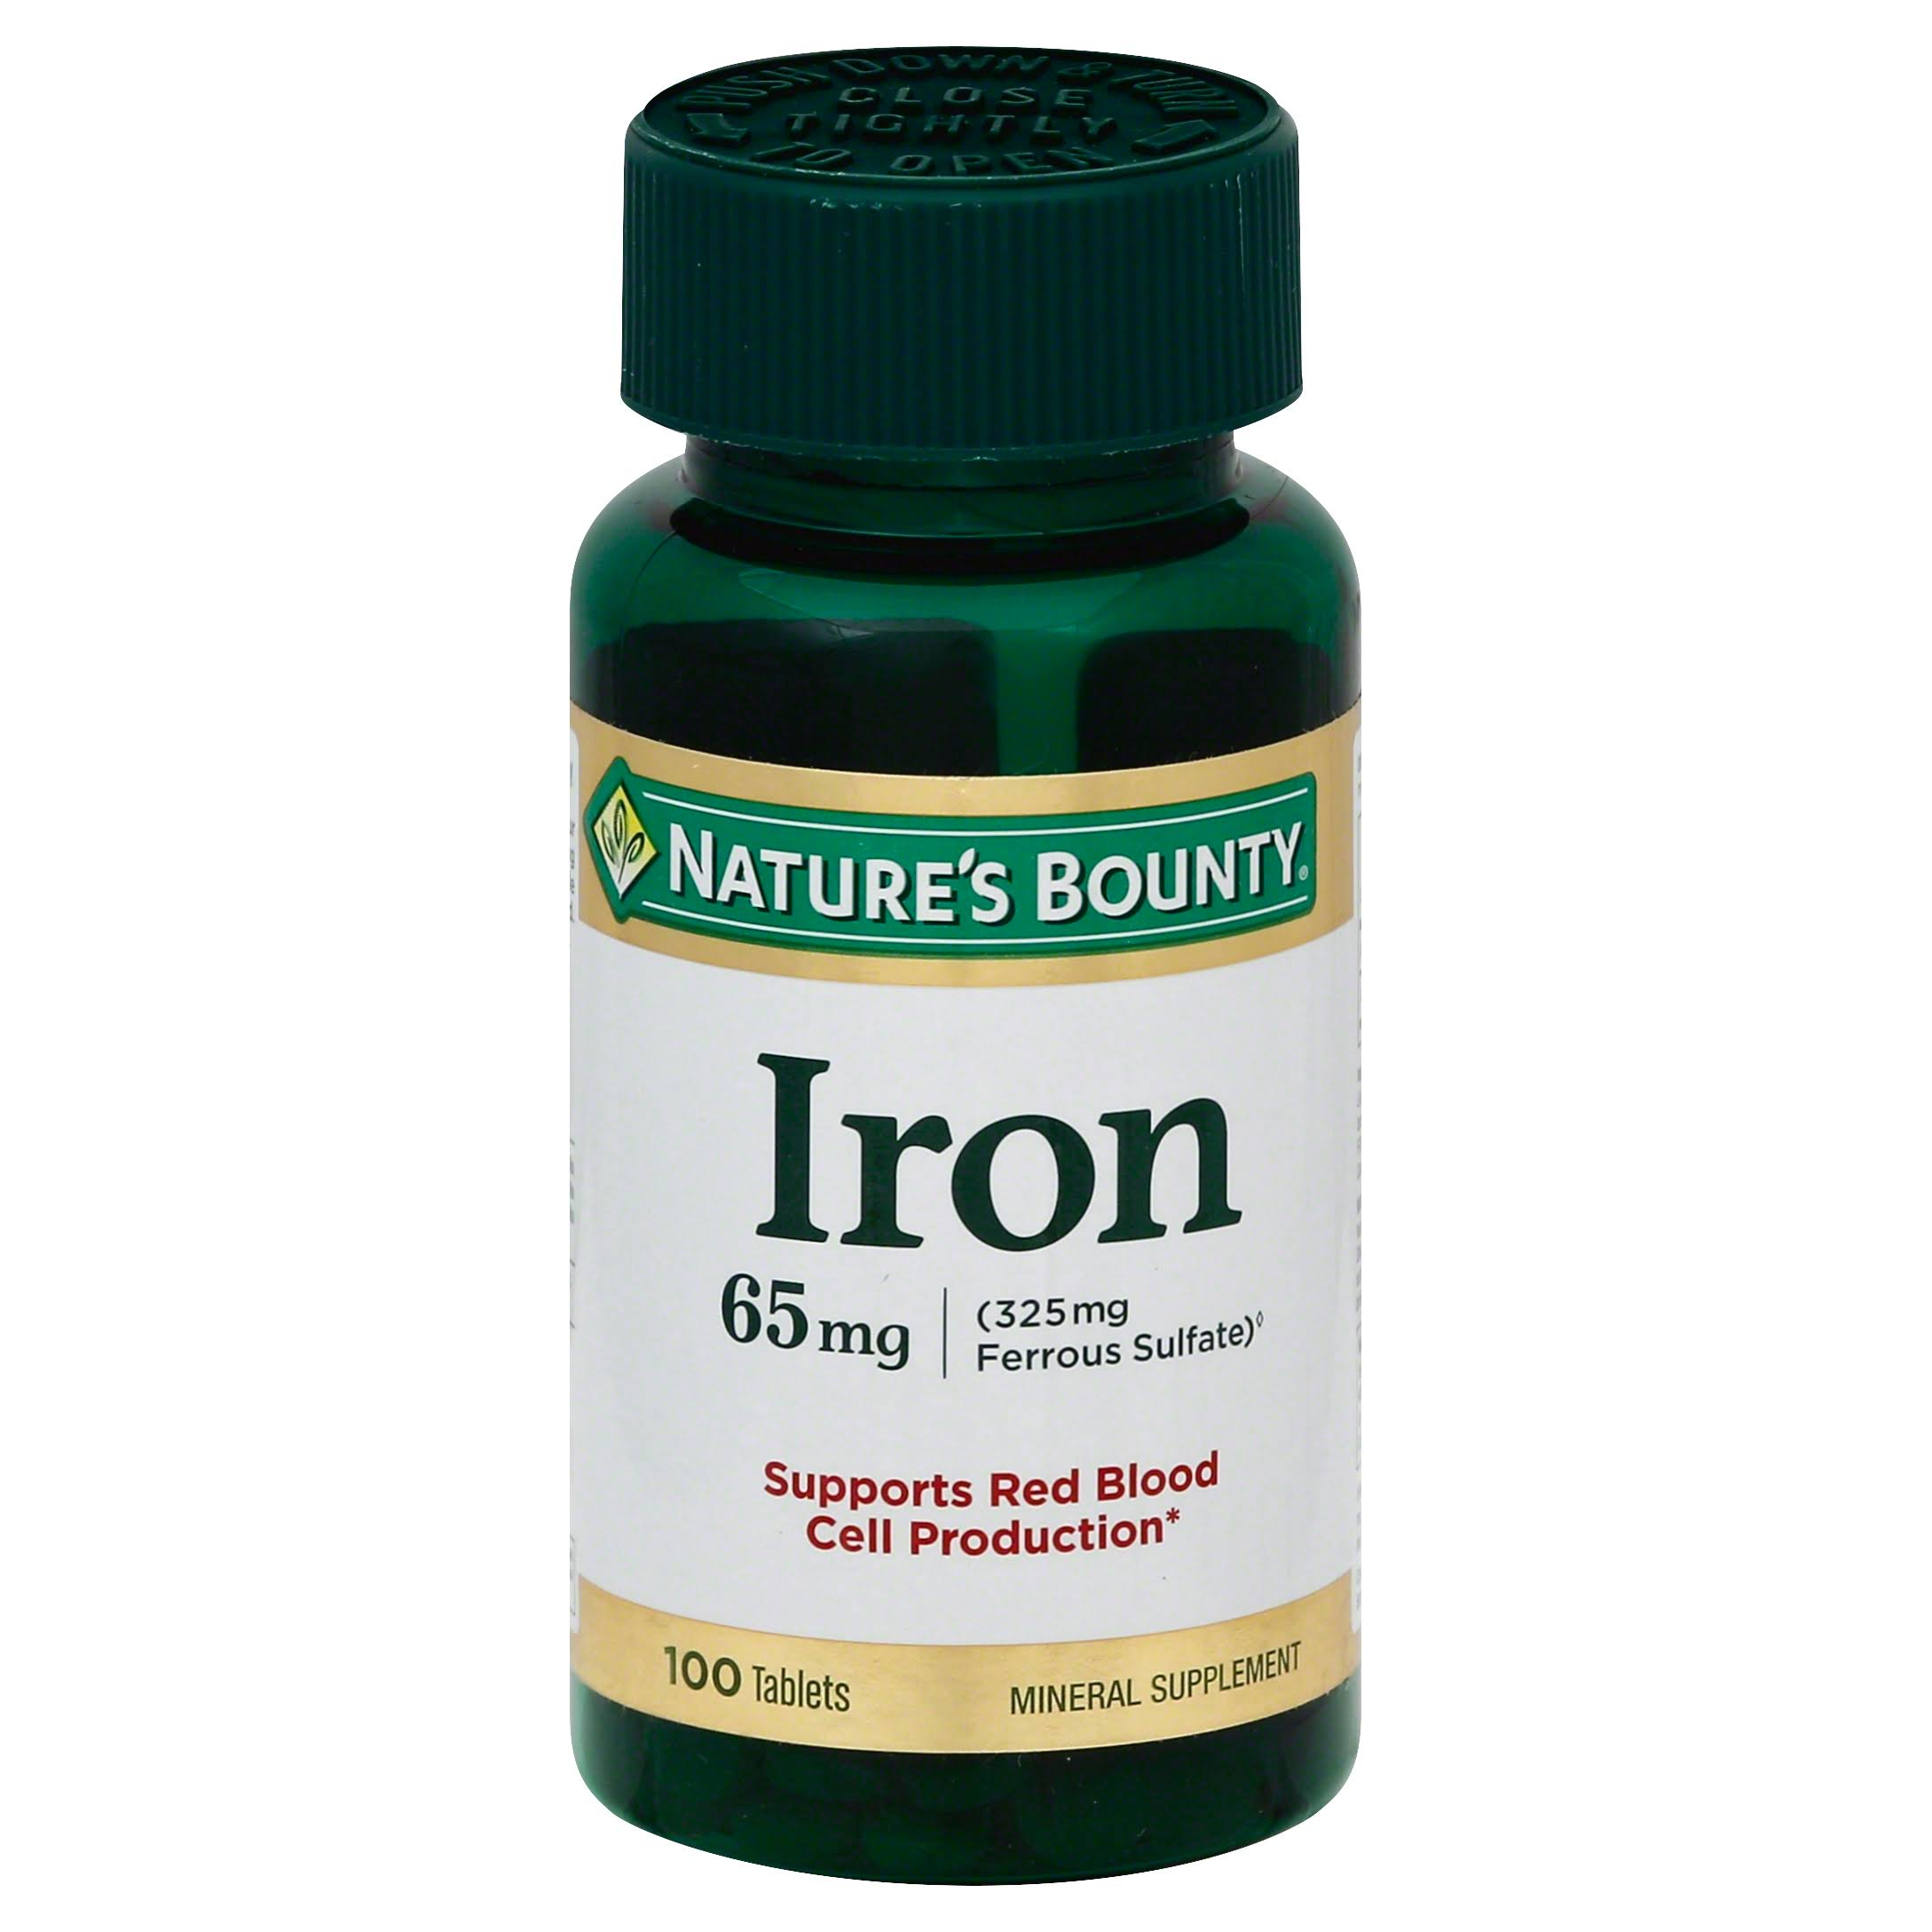 Nature's Bounty Iron - 65mg, 100 Tablets